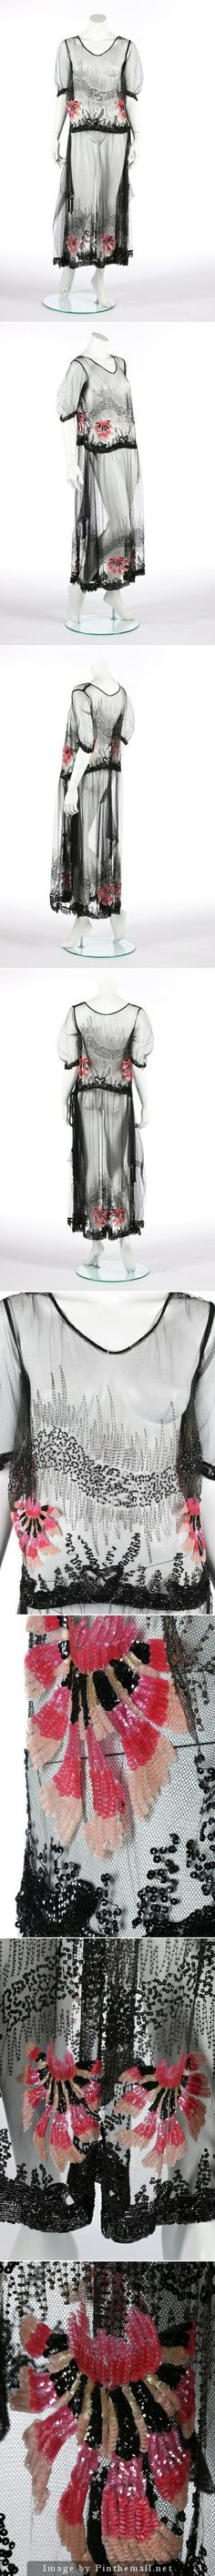 A beaded tulle cocktail dress, circa 1915-20. adorned with zig-zagged steel beads, vermicular black sequins and large pink carnation palmettes, with beaded rope belt which slots through and ties over one hip, pointed side panels edged in beaded tassels. KTA